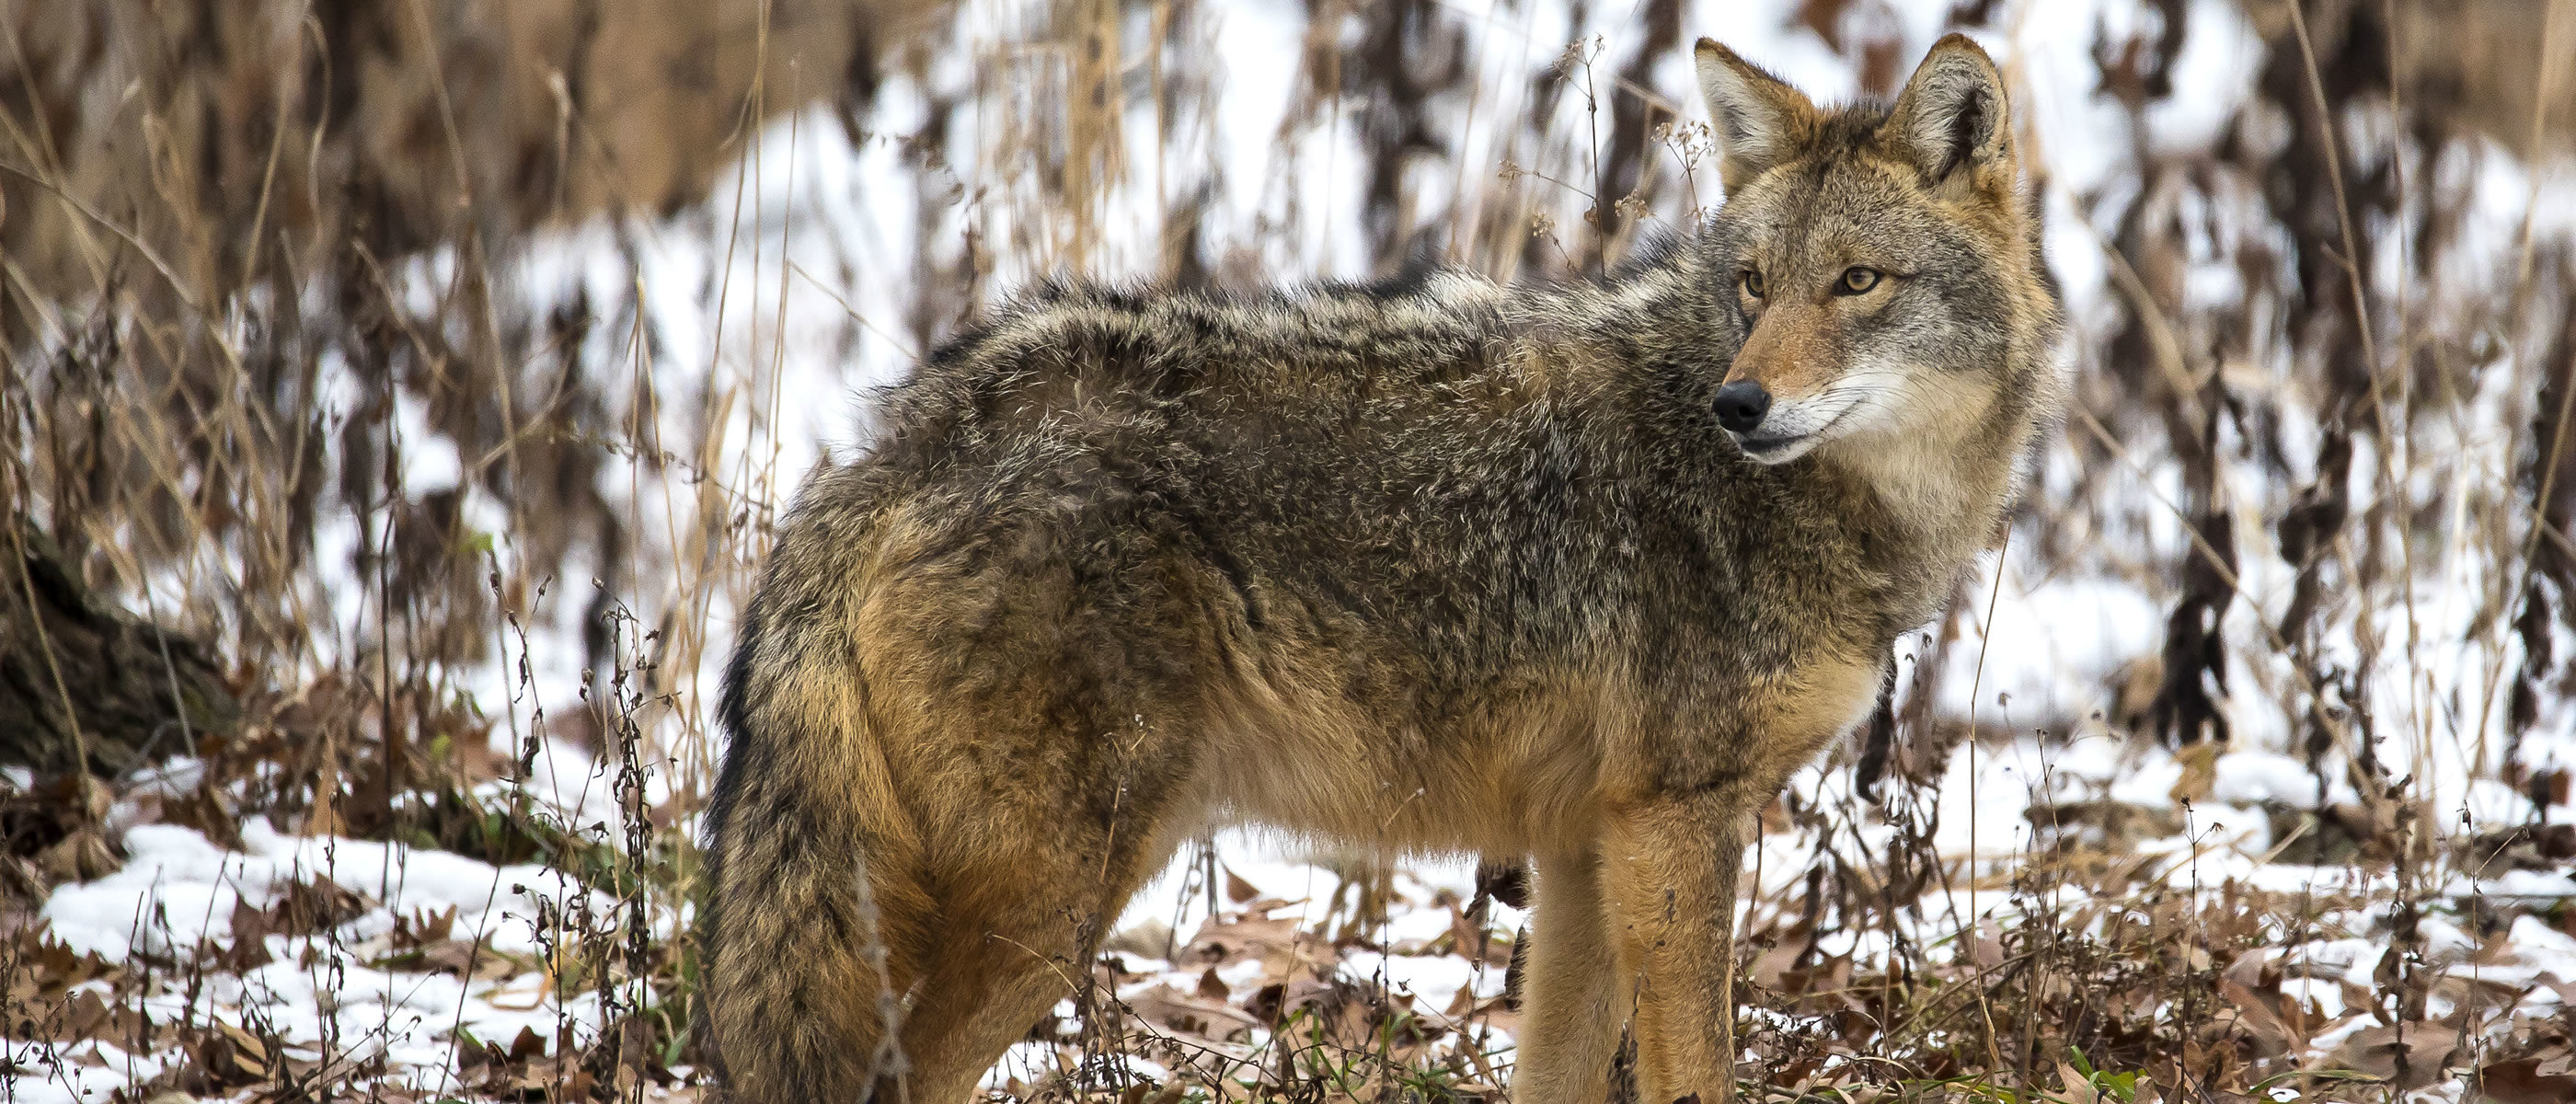 A coyote at Yankee Woods.